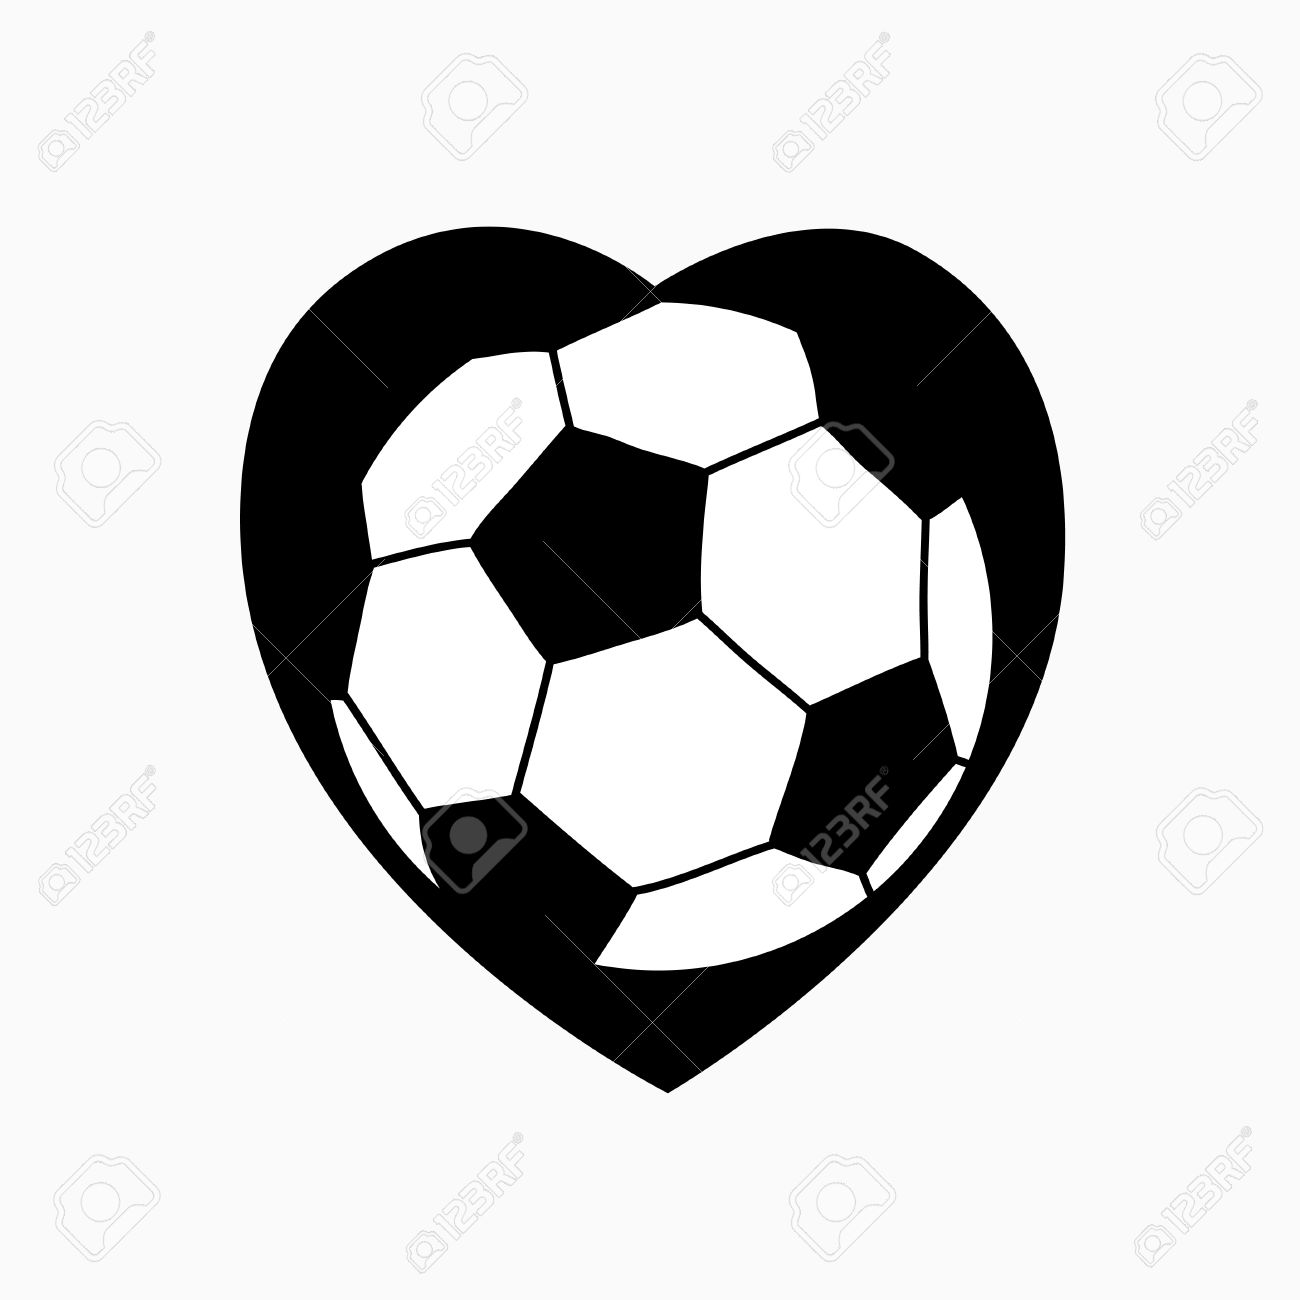 Soccer Ball In The Form Of Heart Vector Illustration Royalty Free.